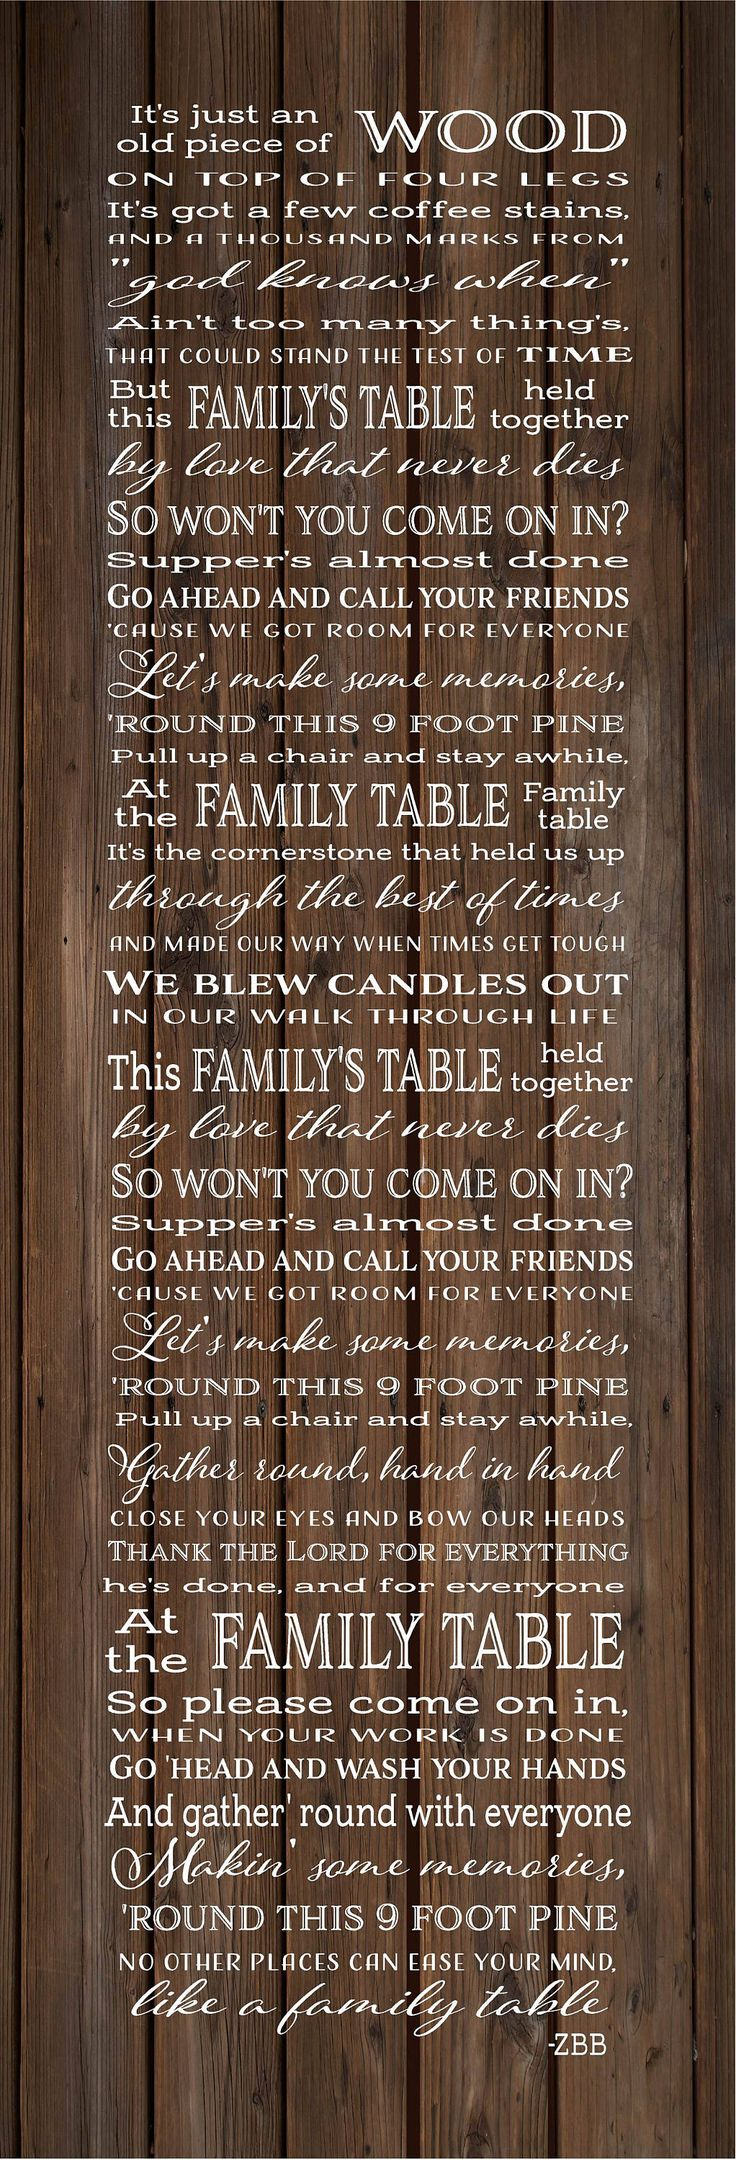 Family Table Lyrics Zac Brown Band Wood Sign, Canvas Wall Art - Christmas, Sympathy by HeartlandSigns on Etsy